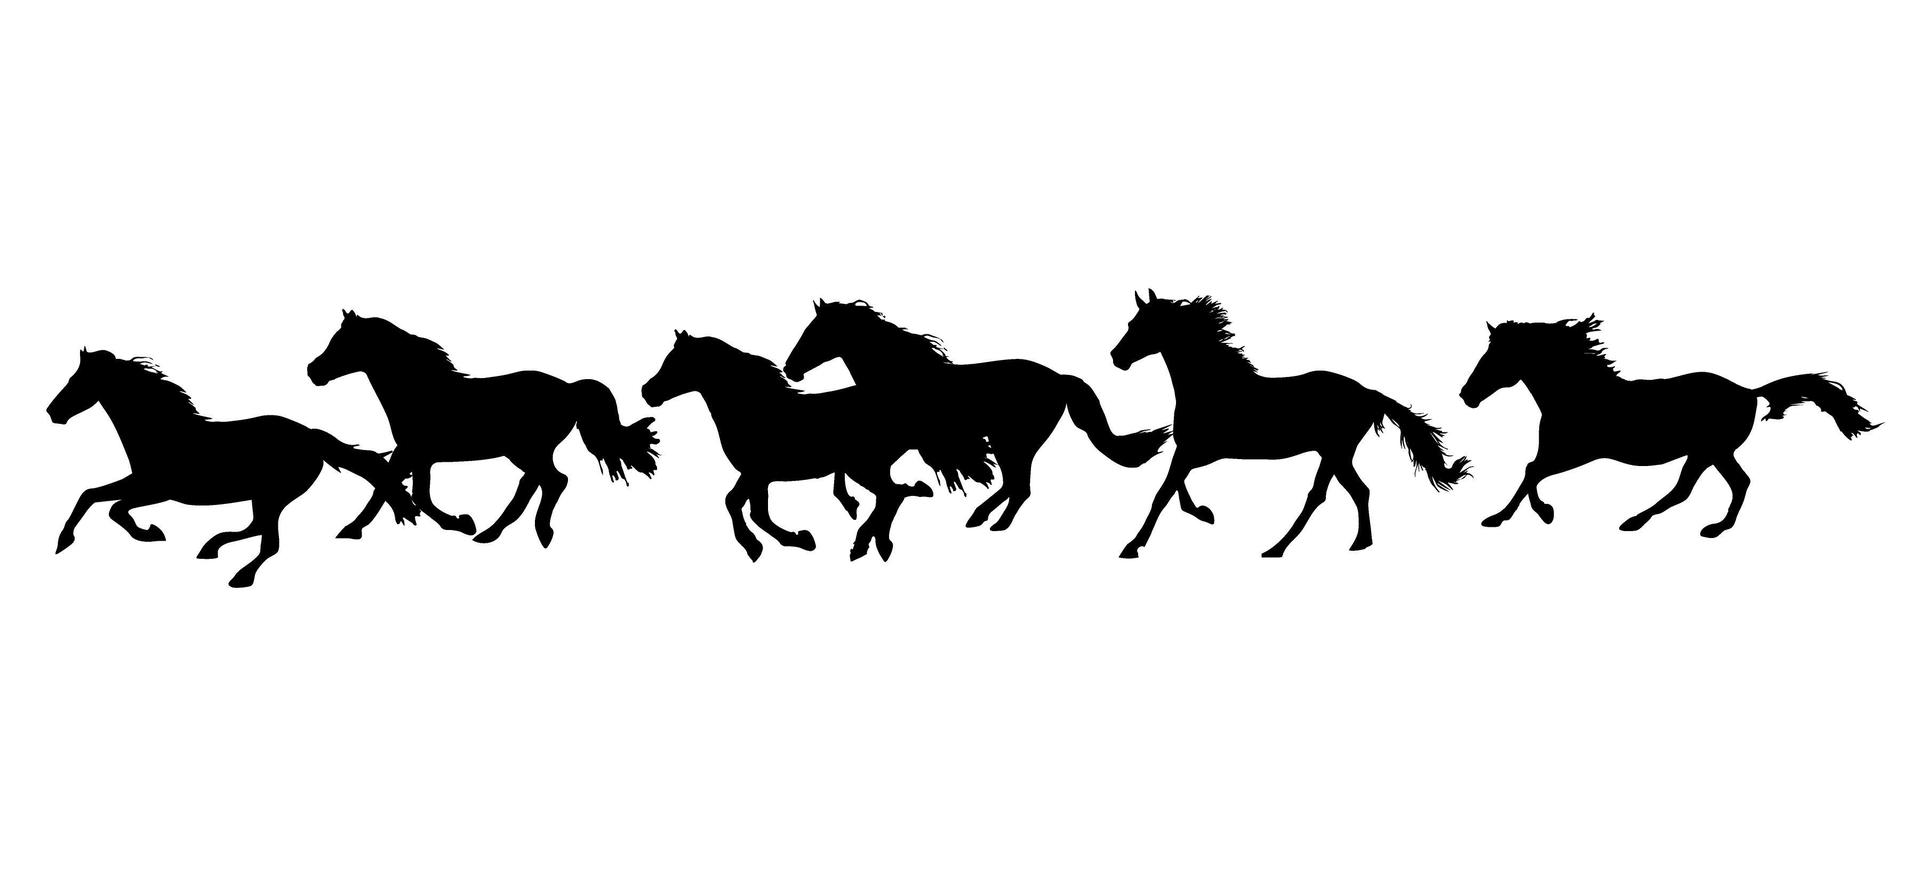 Silhouette of horses running